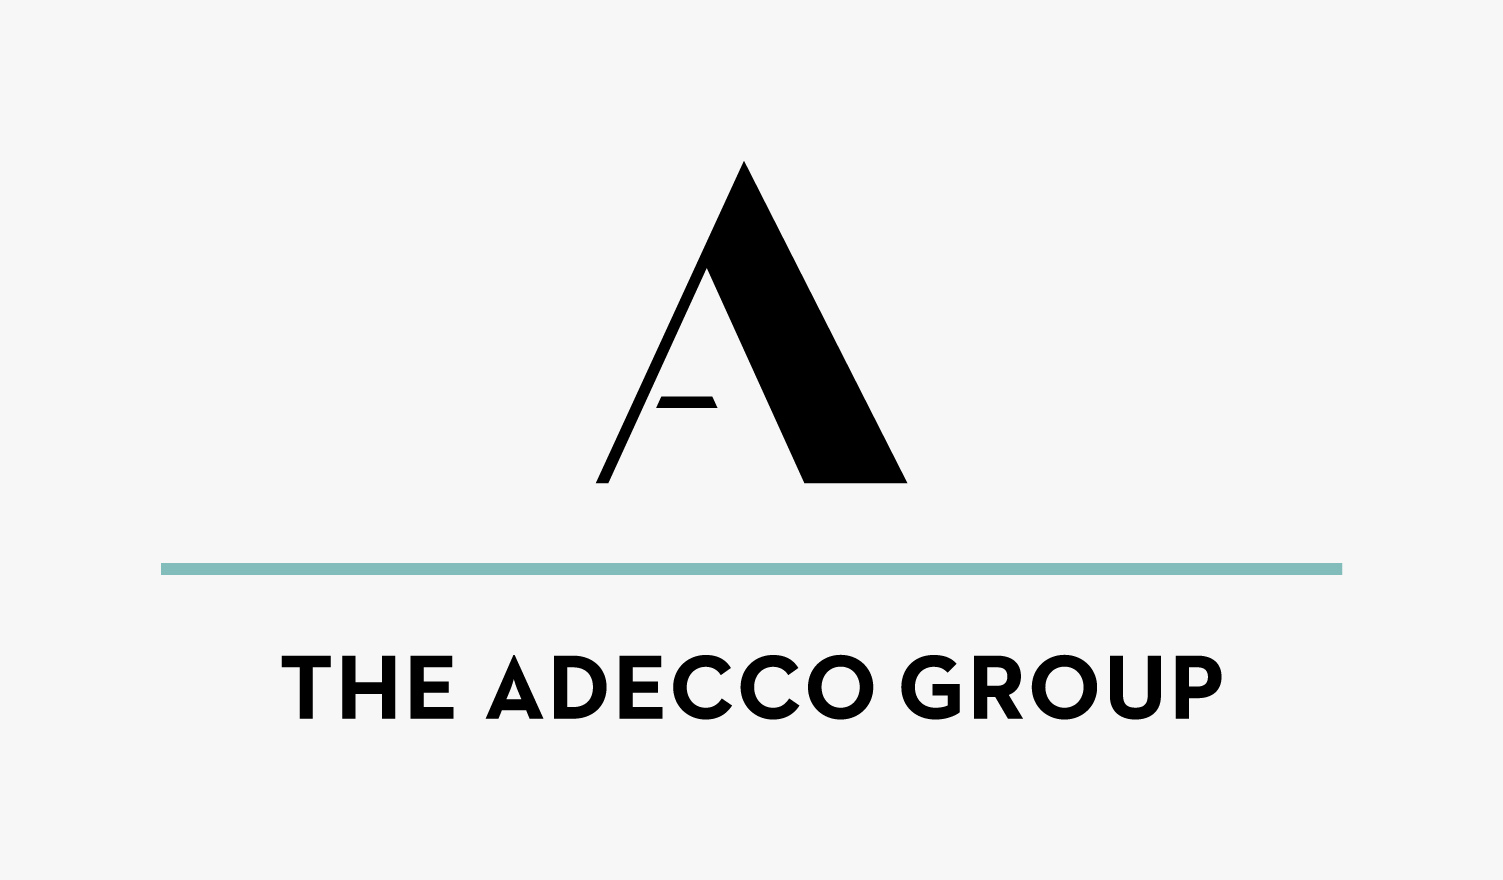 The Adecco Group identity